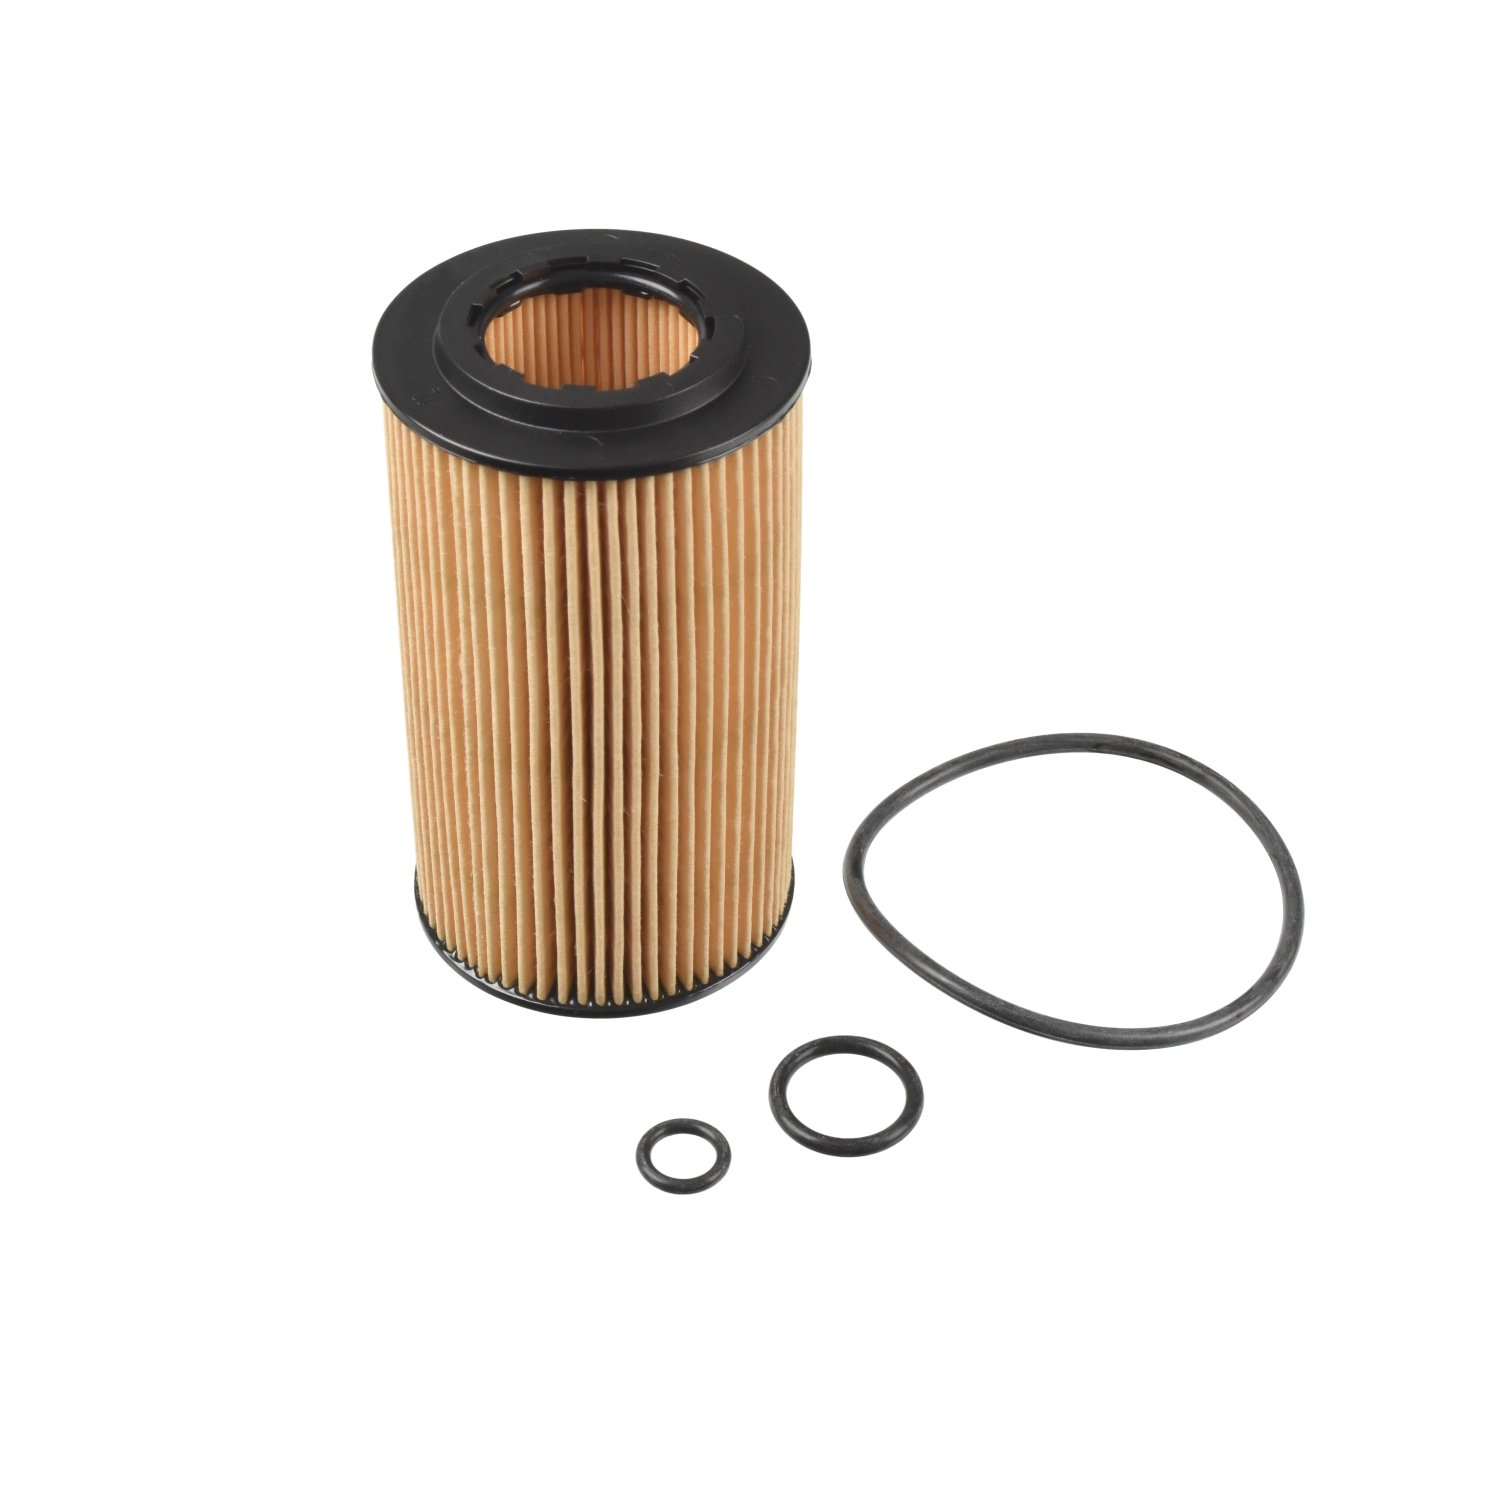 Blue Print ADH22116 oil filter with seal rings  - Pack of 1 Automotive Distributors Limited